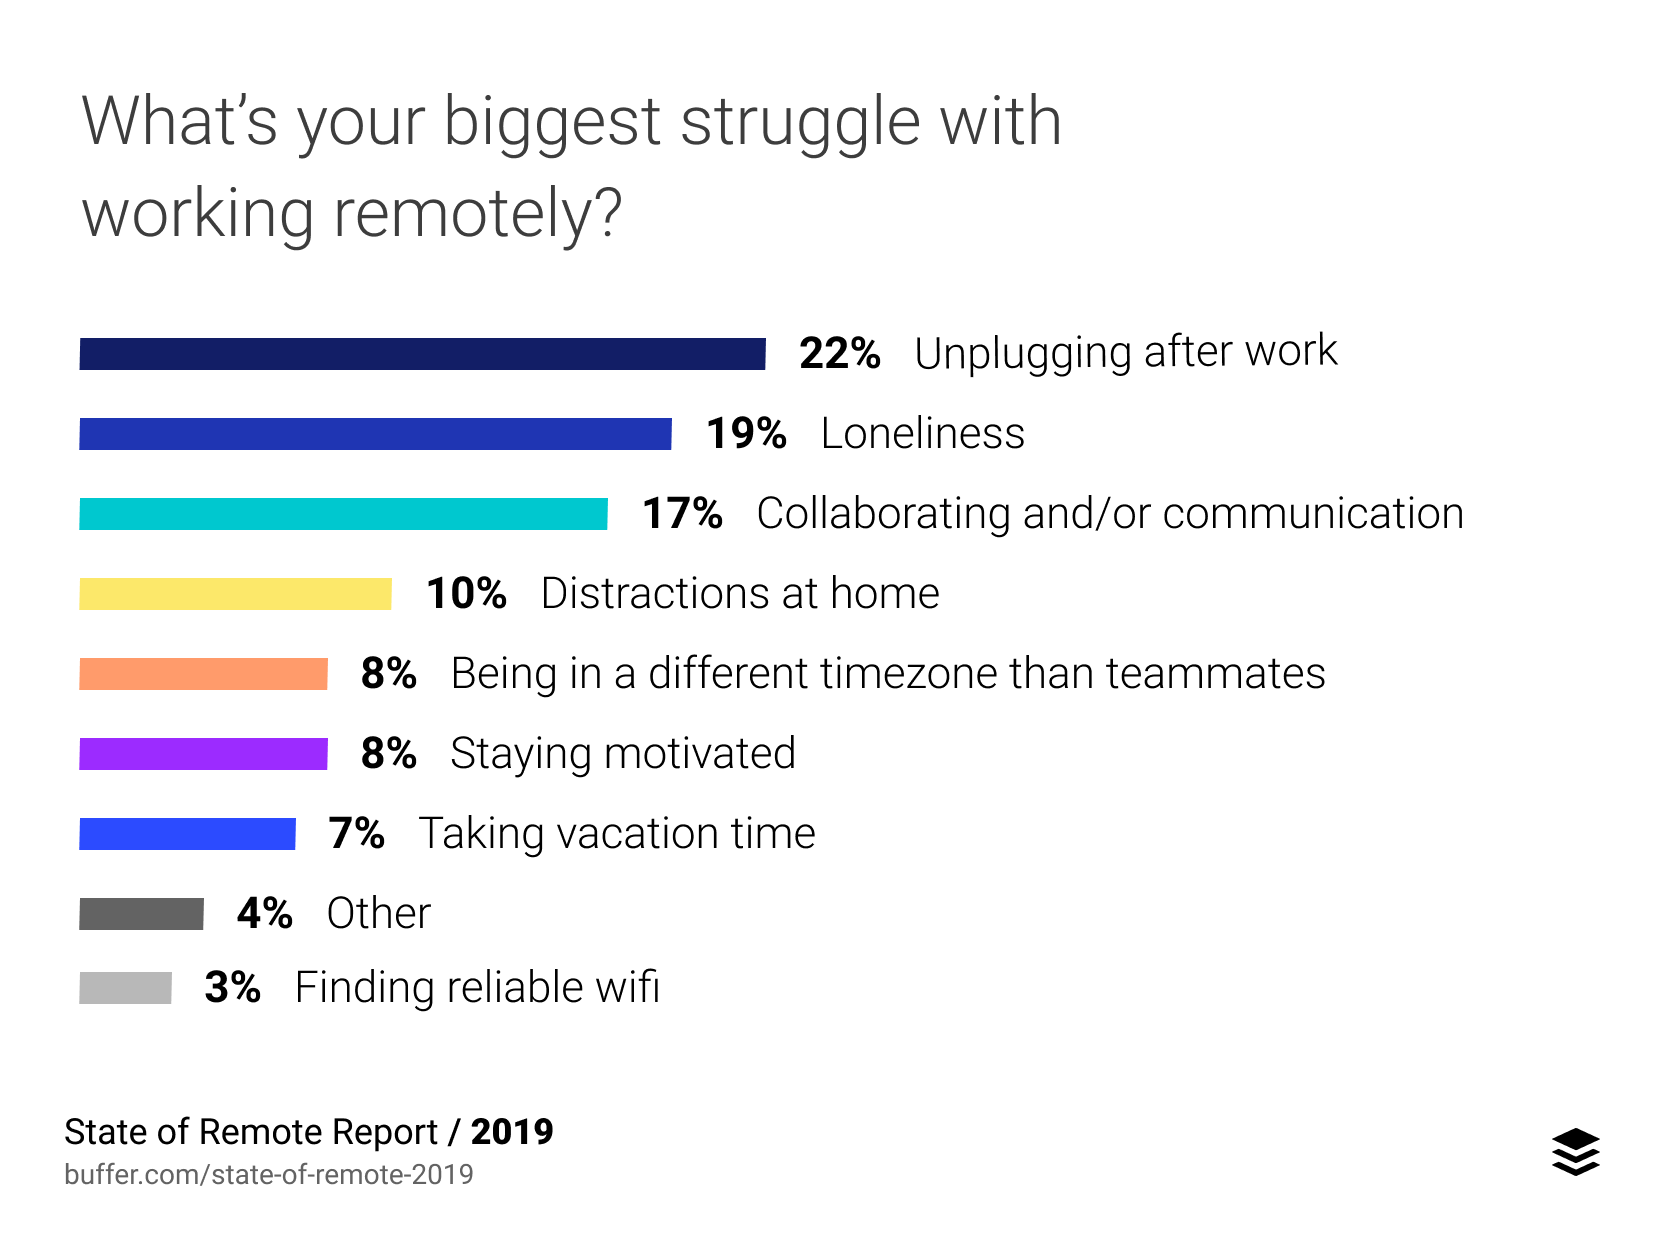 Top struggles of working remotely vs. working in the office - Buffer